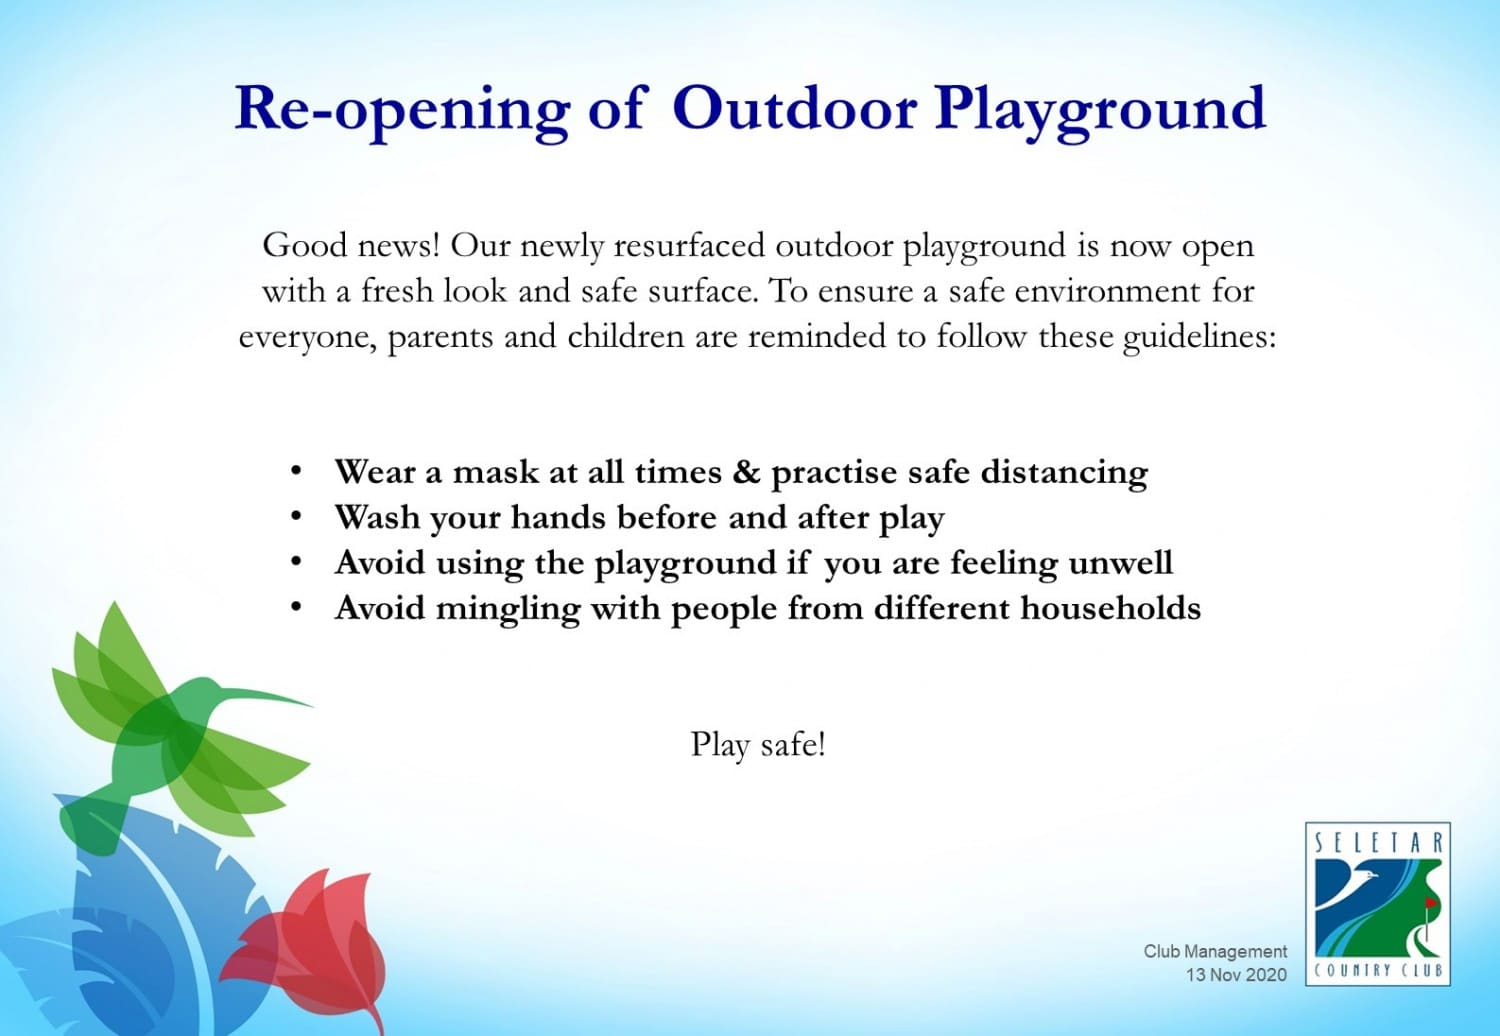 Reopening of outdoor playground